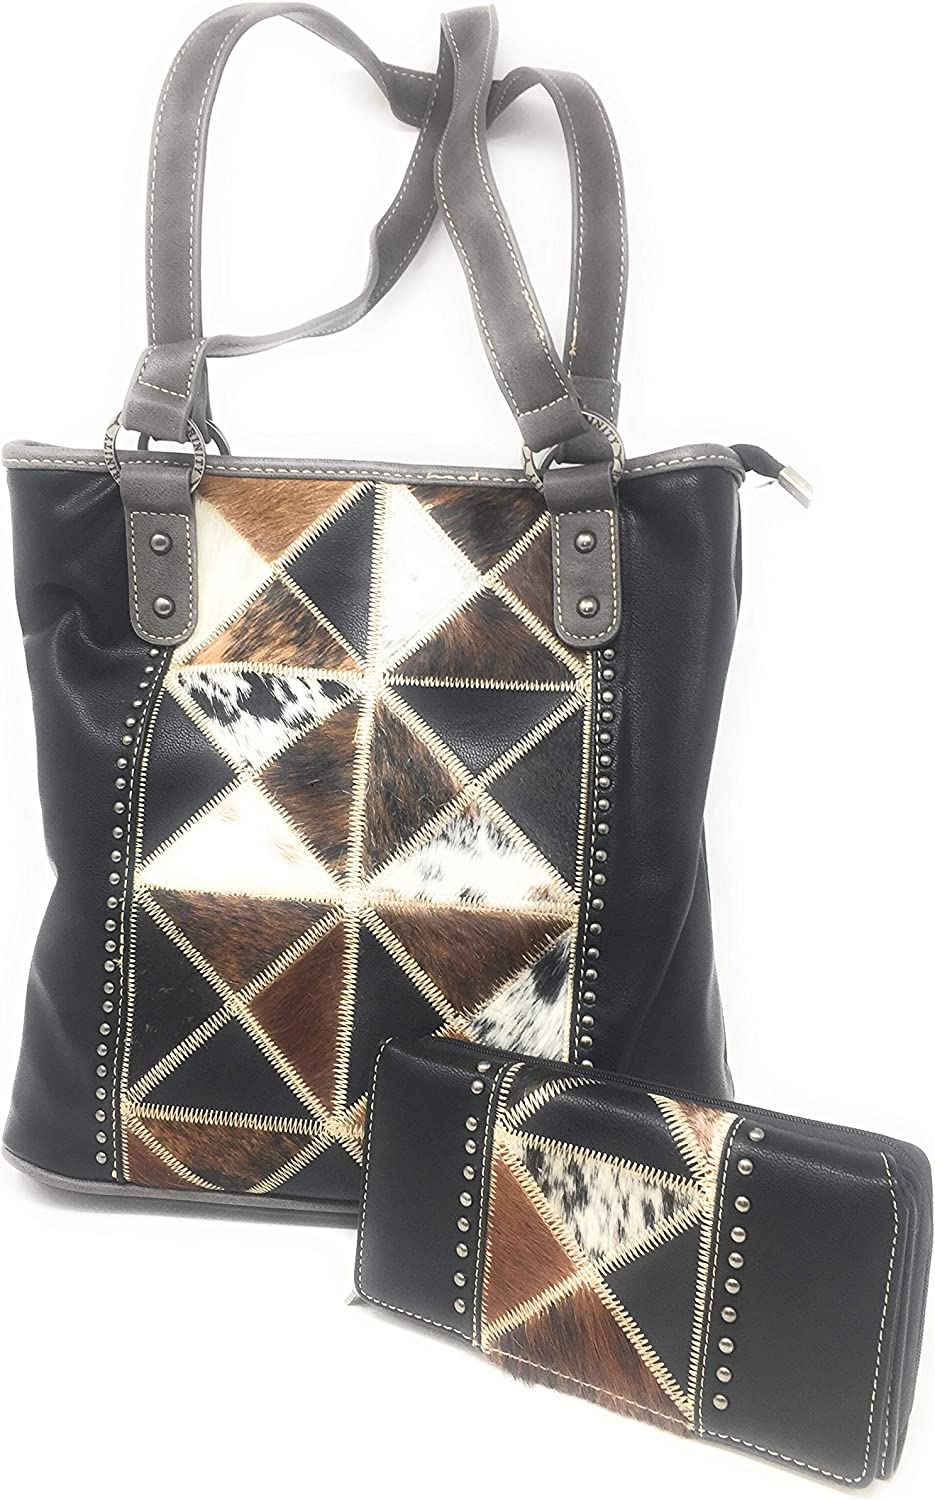 Concealed Carry Hobo Double Flat Bombing free shipping Cowhide Strap Purse Southwest shop